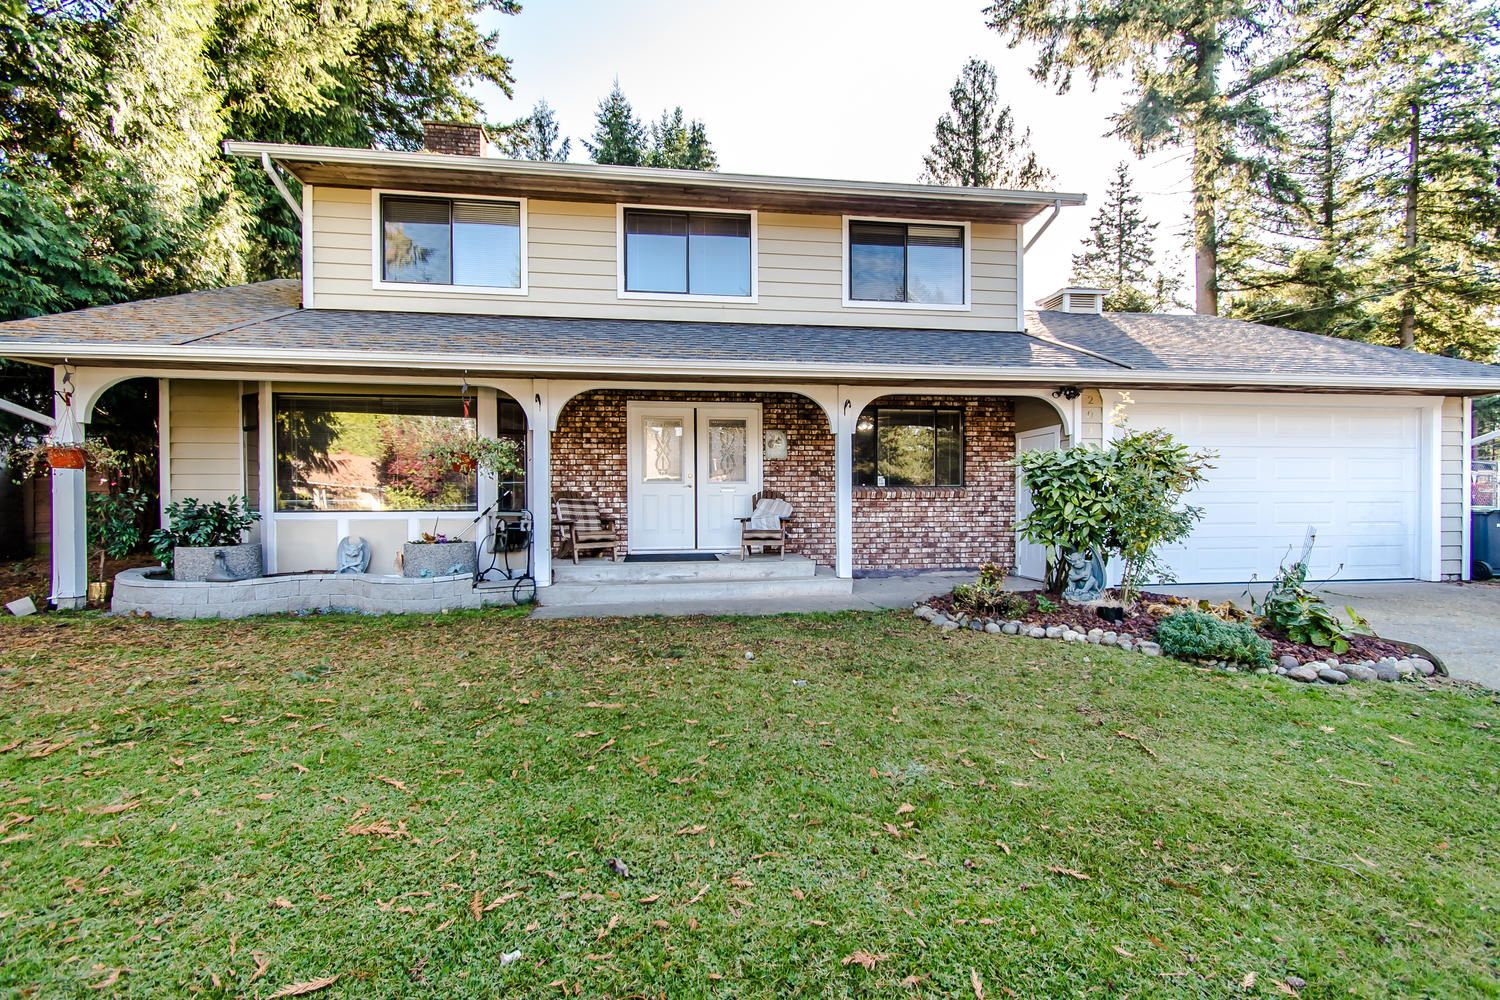 """Main Photo: 20406 40B Avenue in Langley: Brookswood Langley House for sale in """"Brookswood"""" : MLS®# R2416906"""